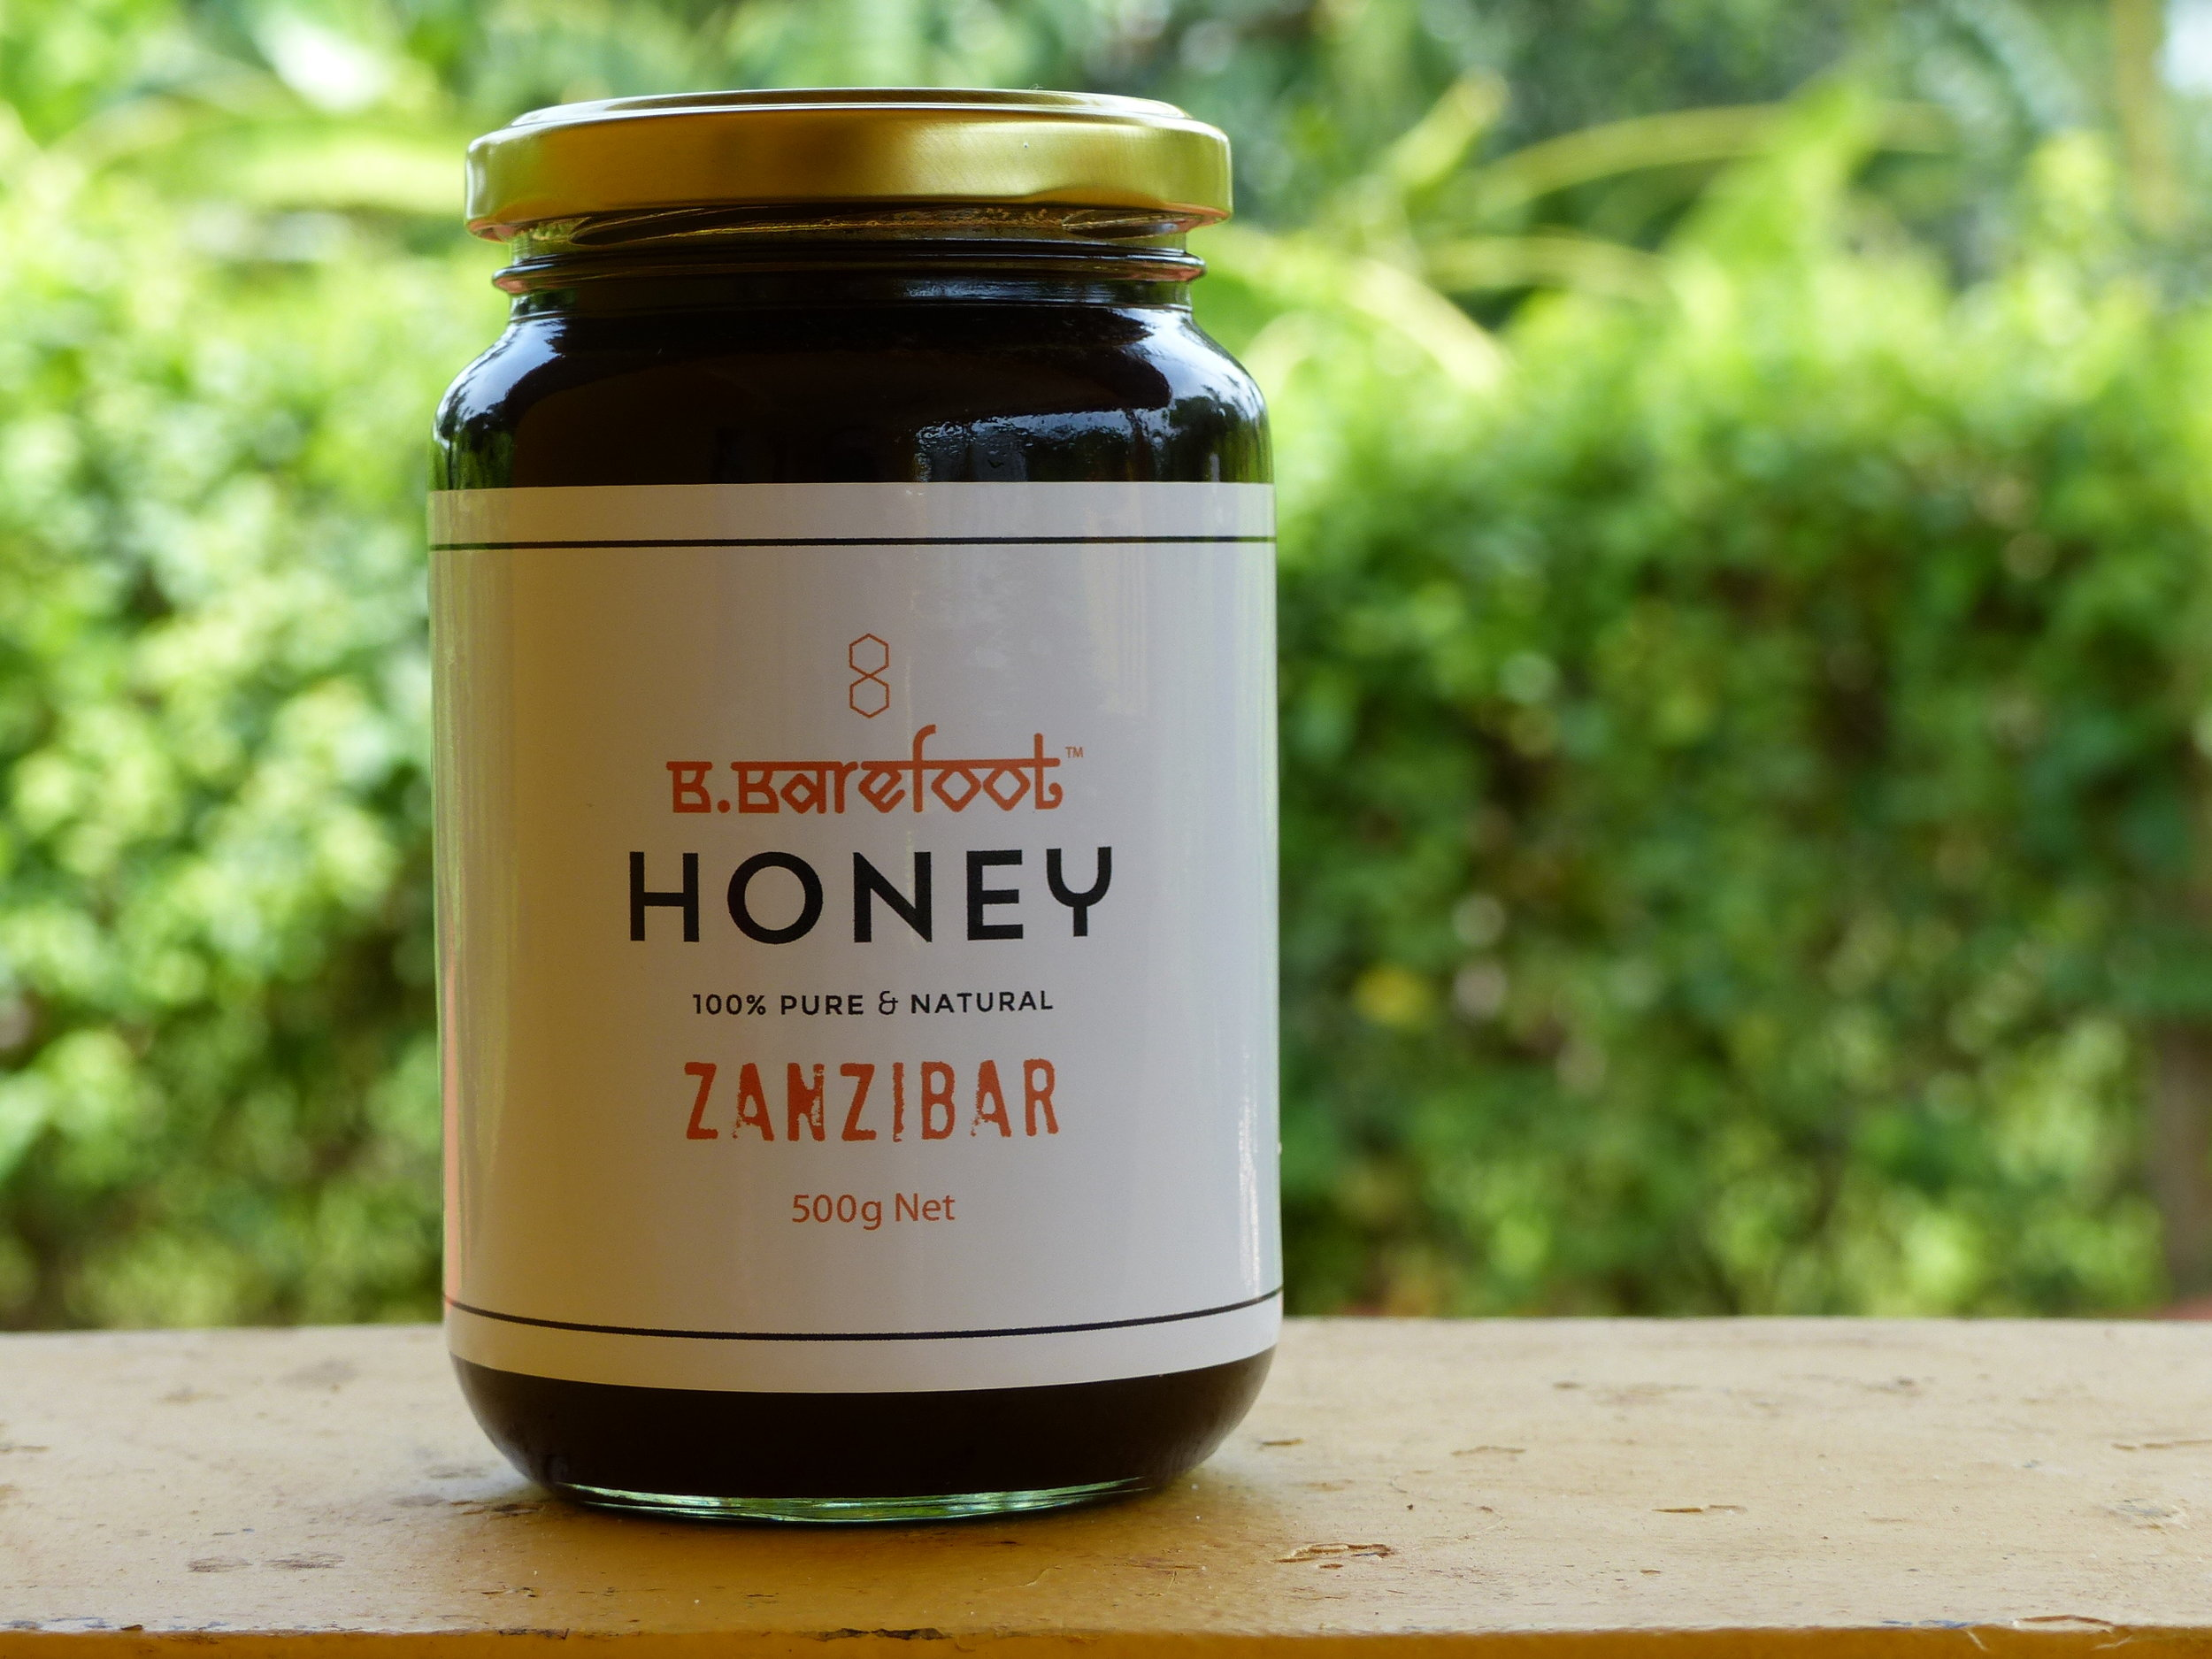 B.BAREFOOT HONEY LARGE (500g)